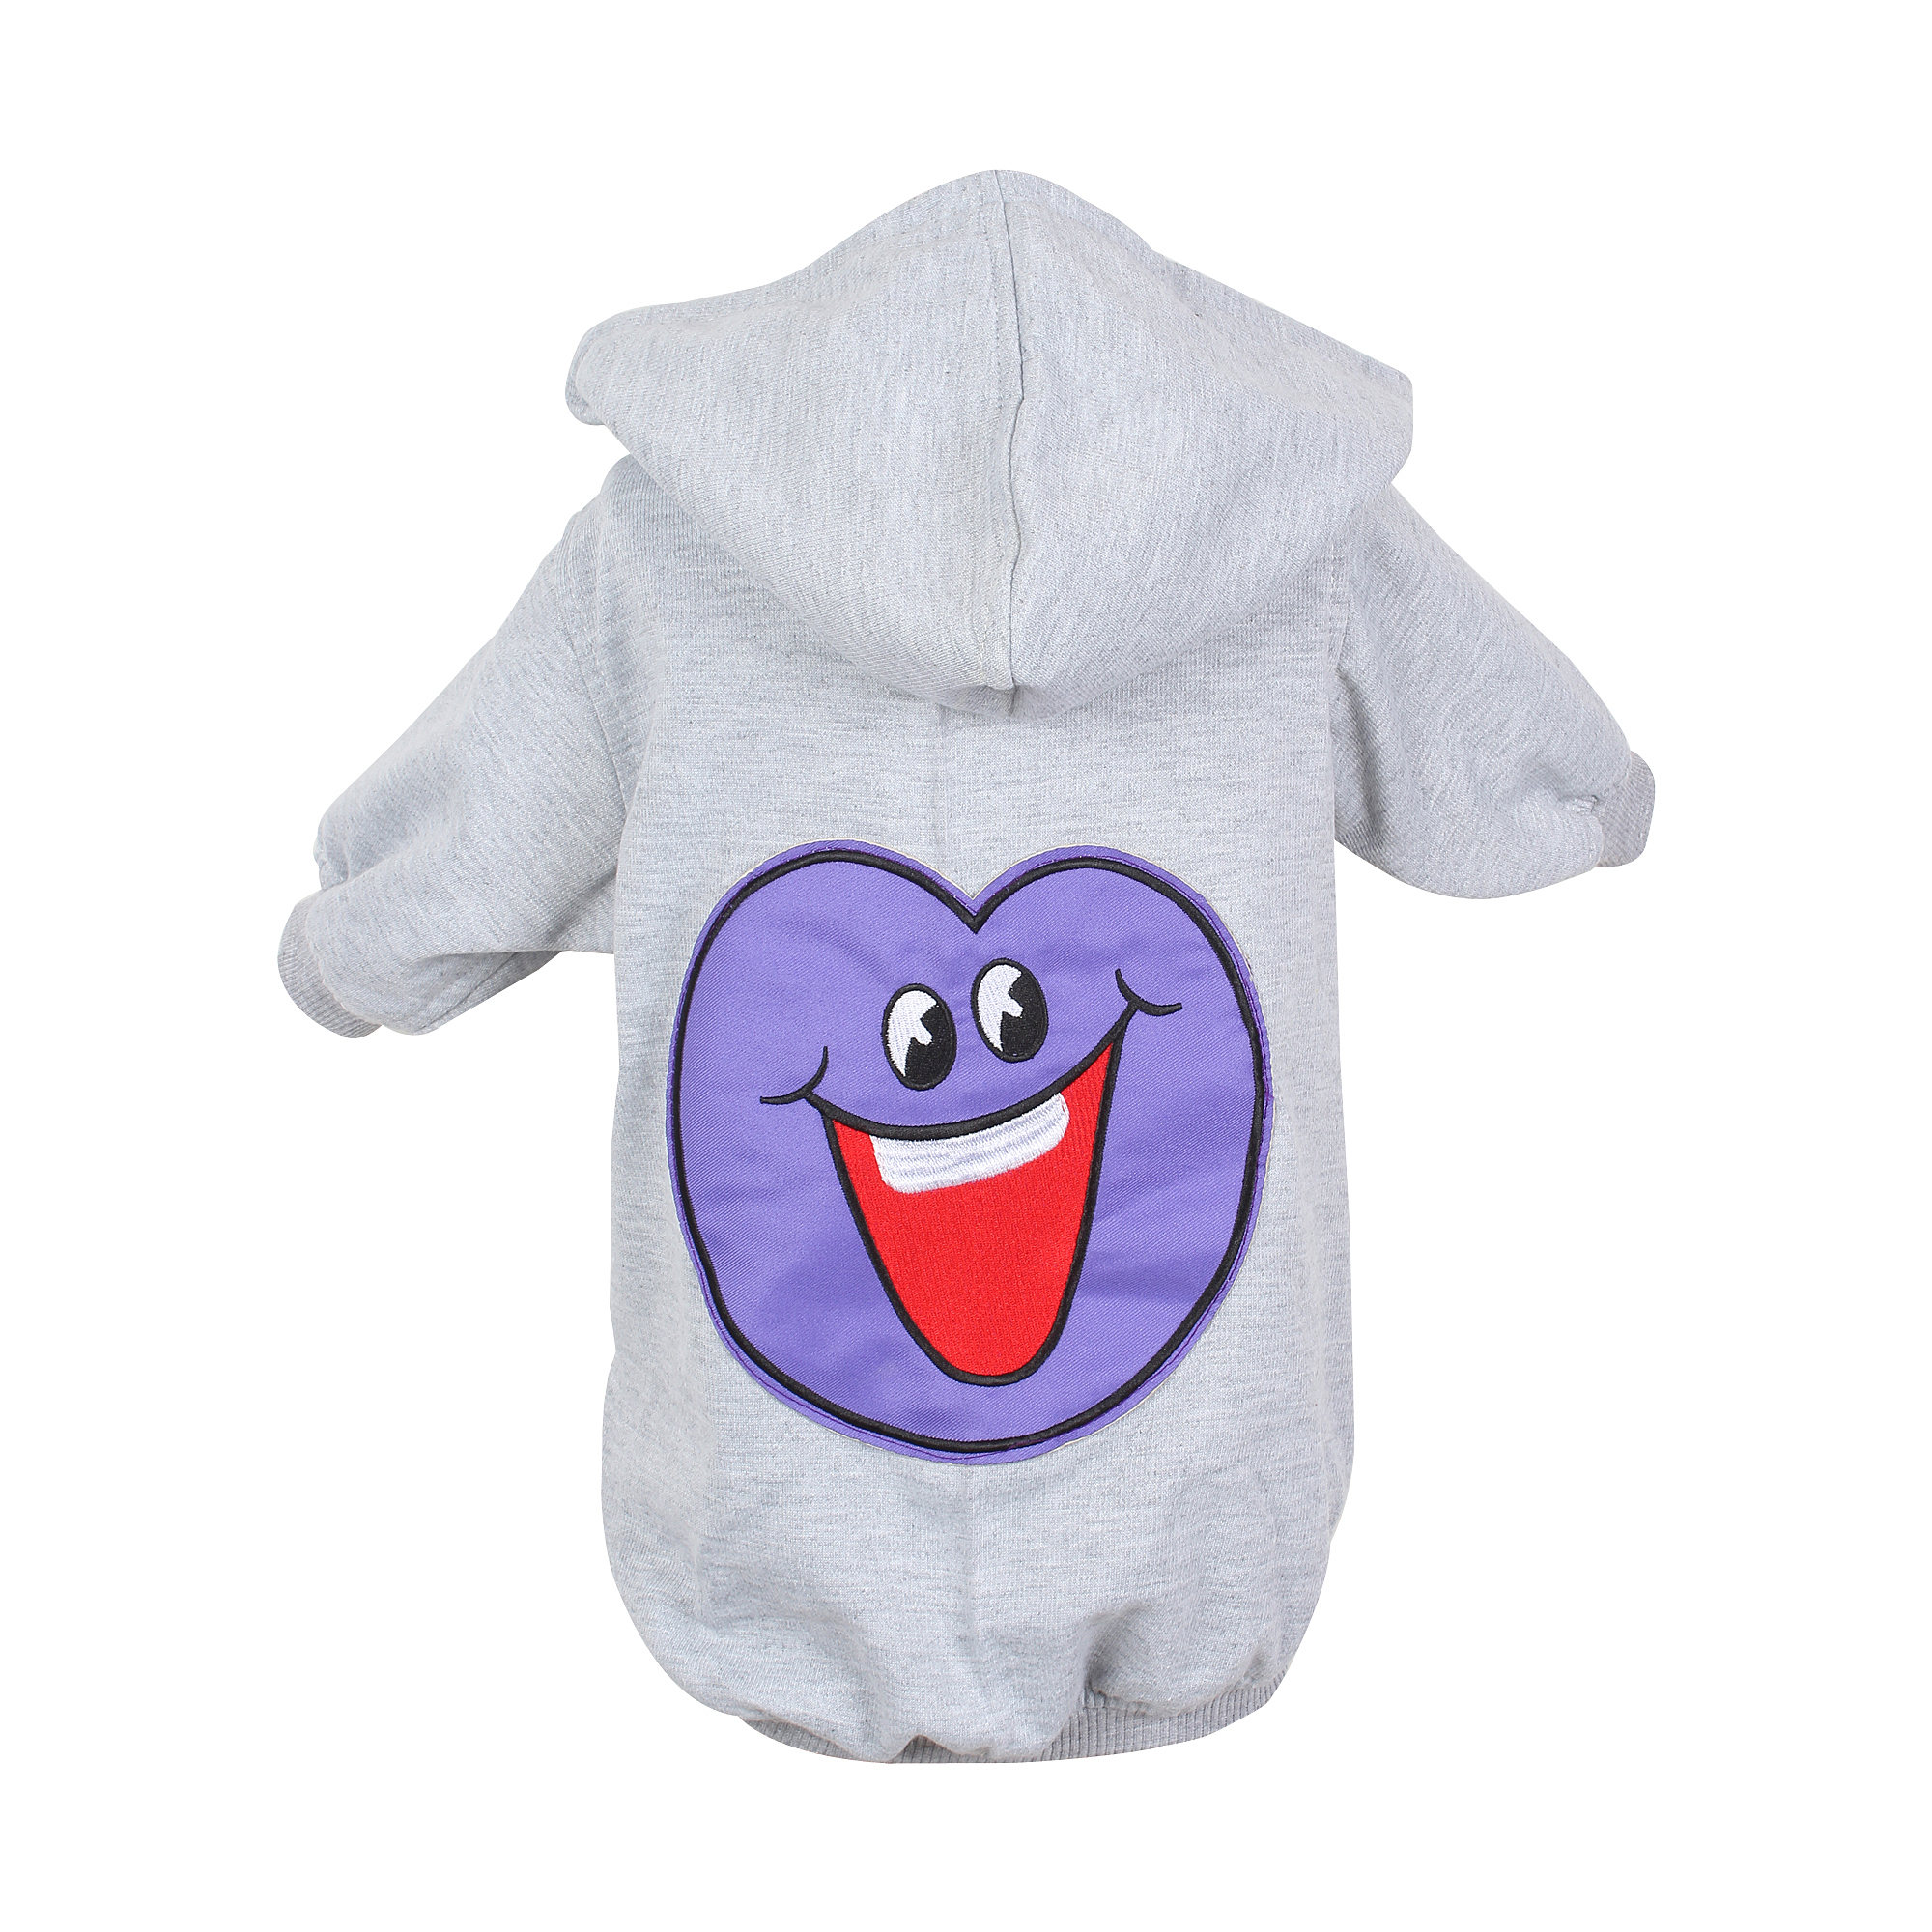 DOUGE COUTURE WINTER STYLISH PATCH HOODIE GREY TEES